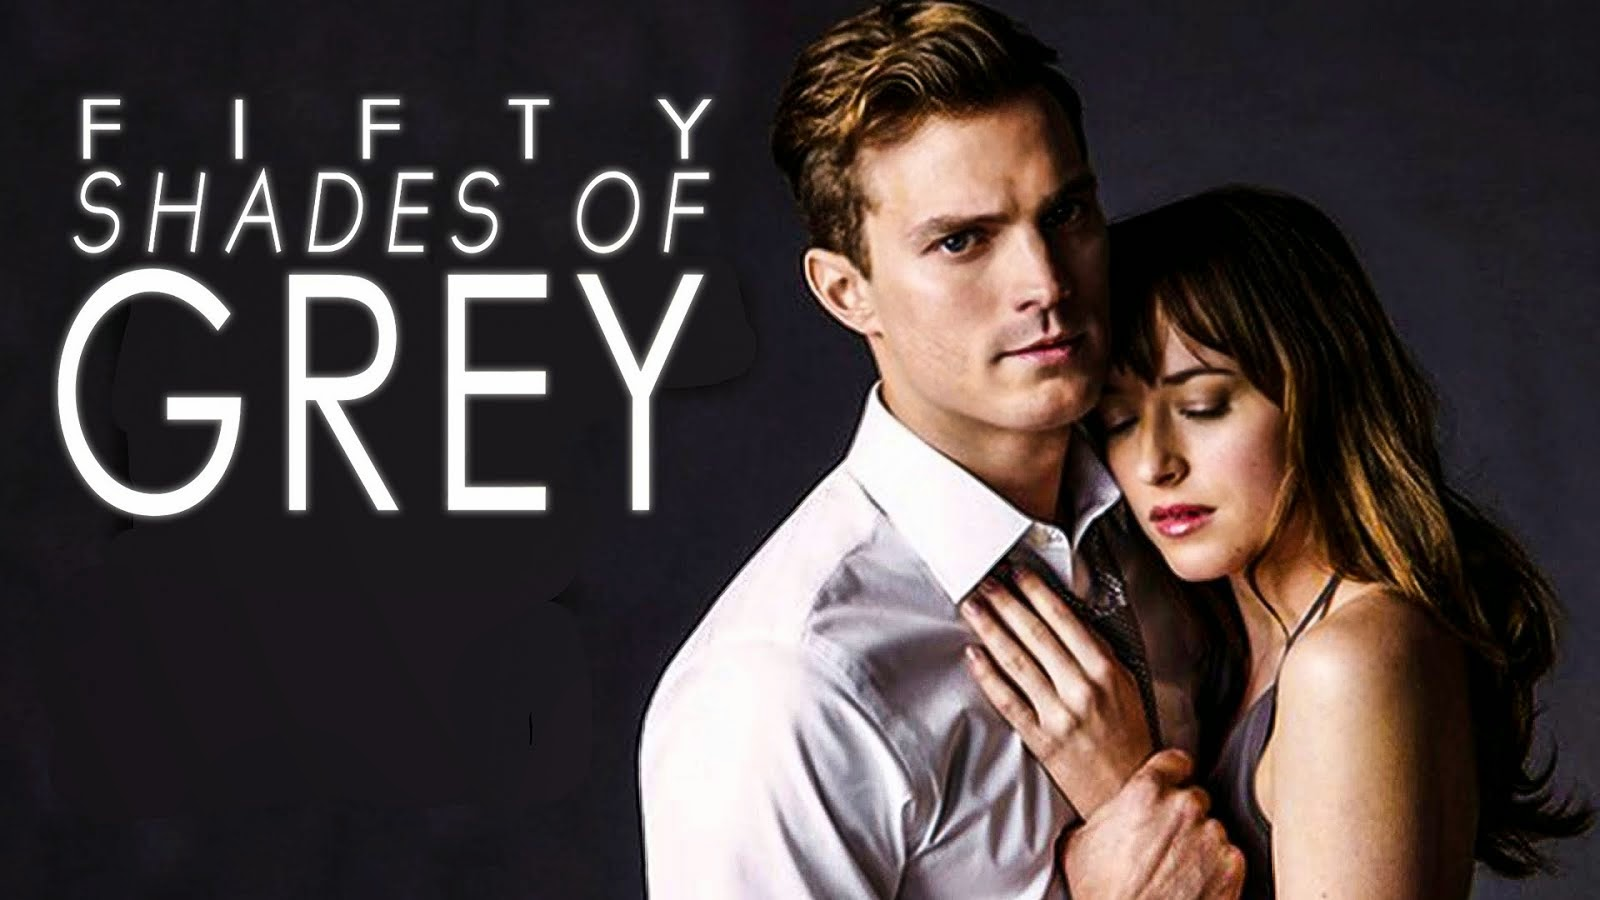 fifty shades of gray epub download